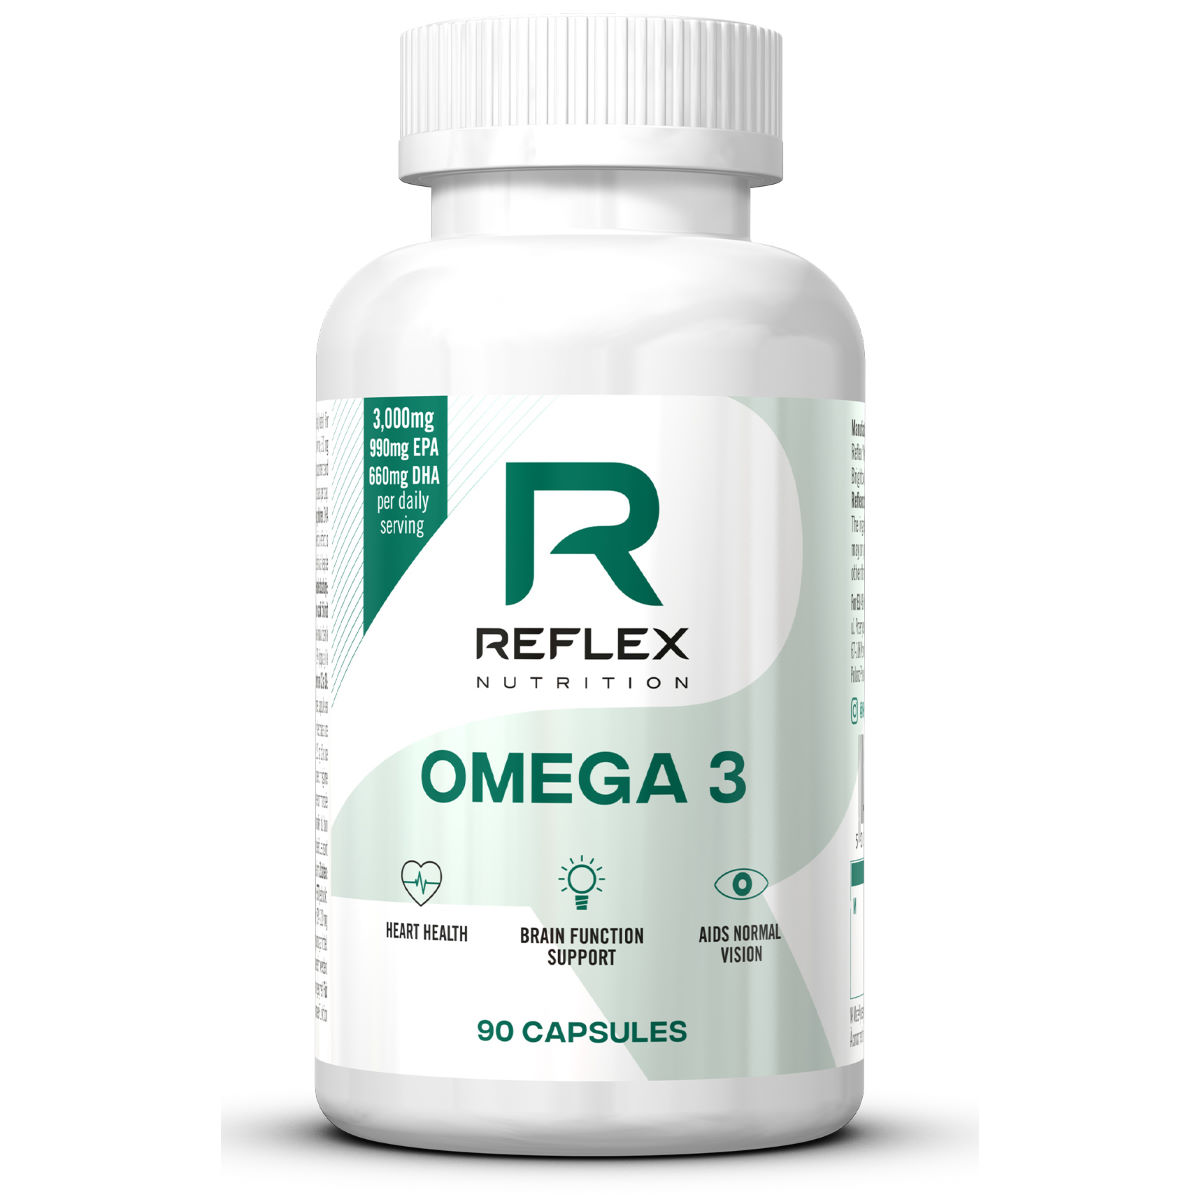 Reflex Omega 3 (90 Capsules) - 90 Capsules Unflavoured  Omegas